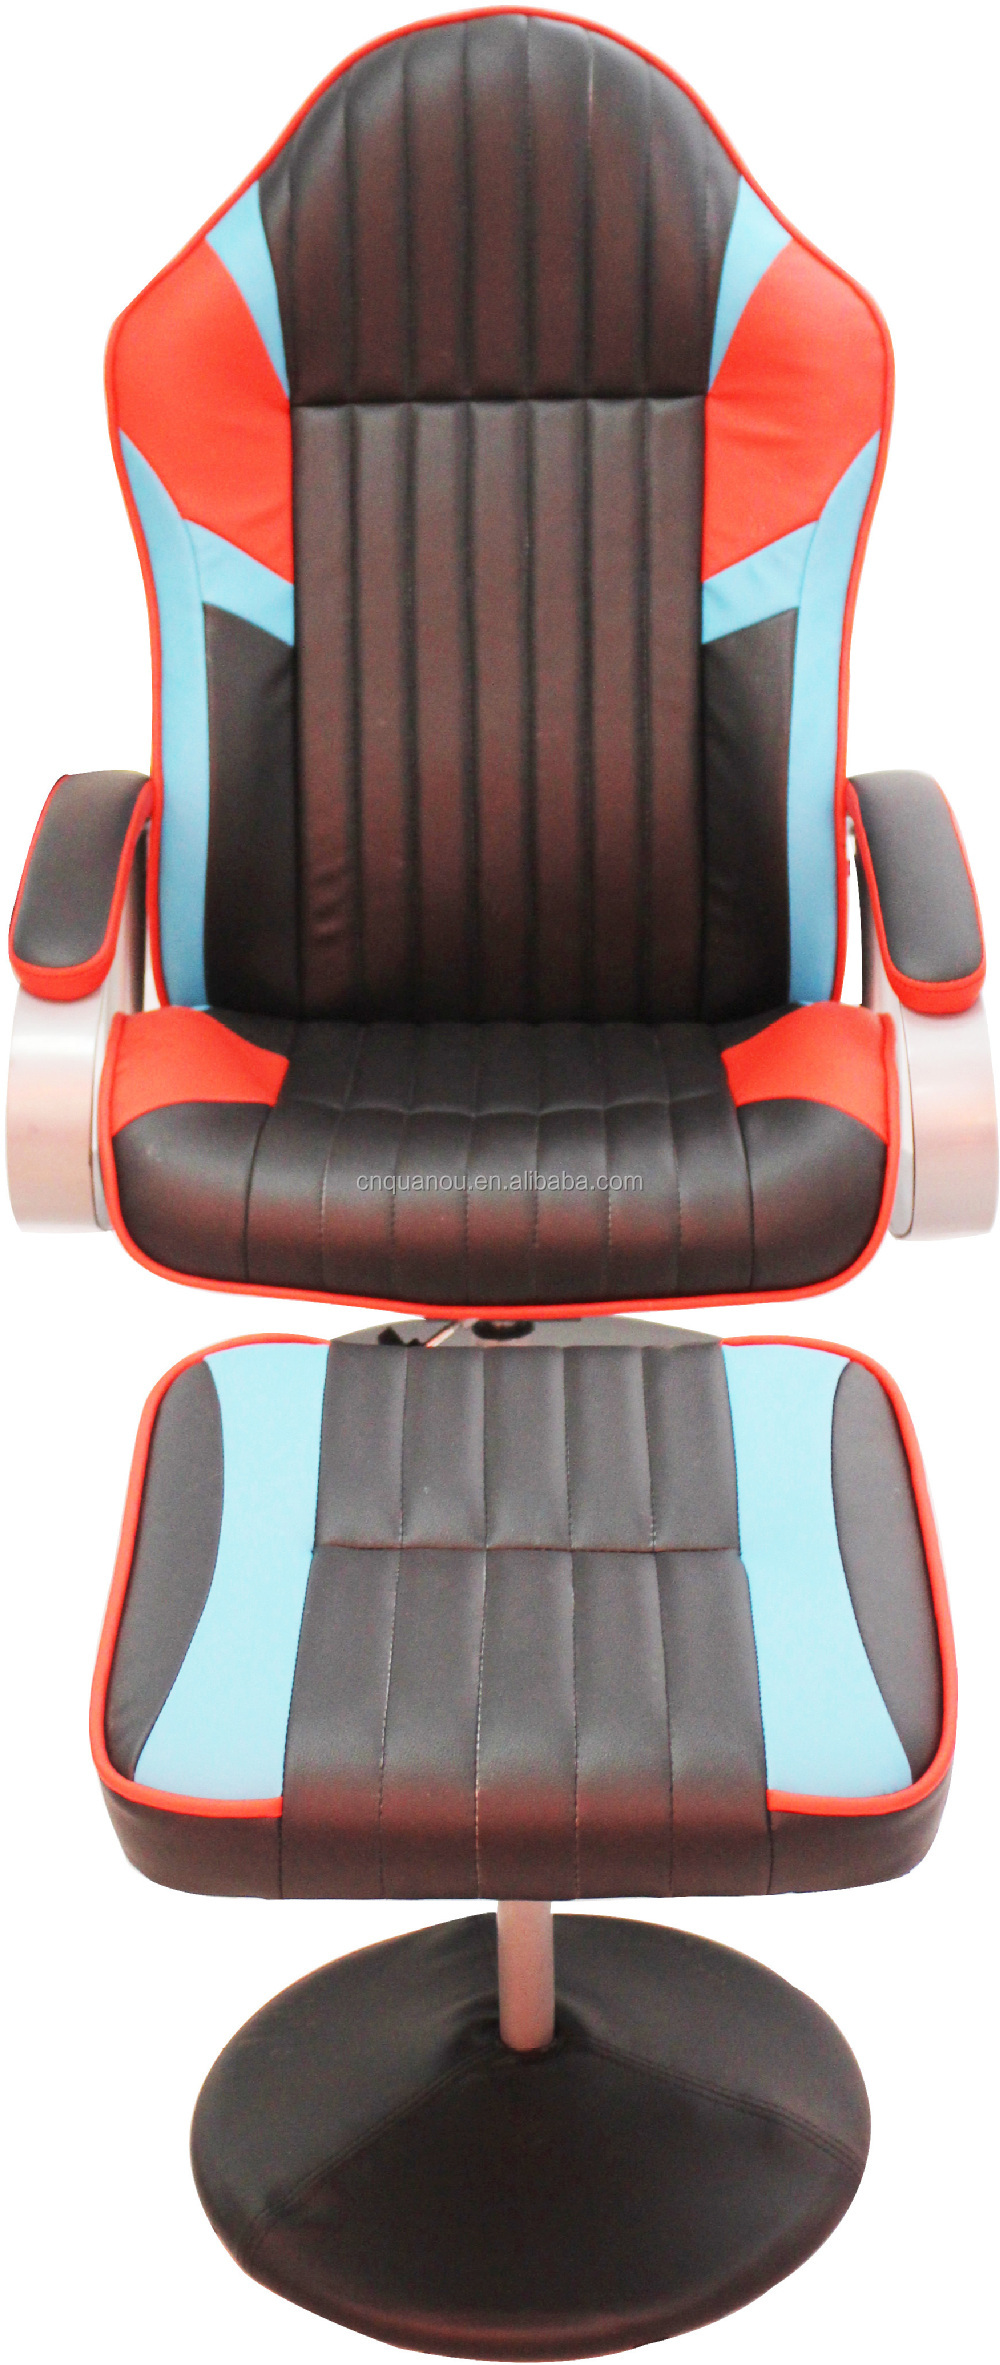 Workwell Racing Recliner With Ottoman fice Chair Car Chair